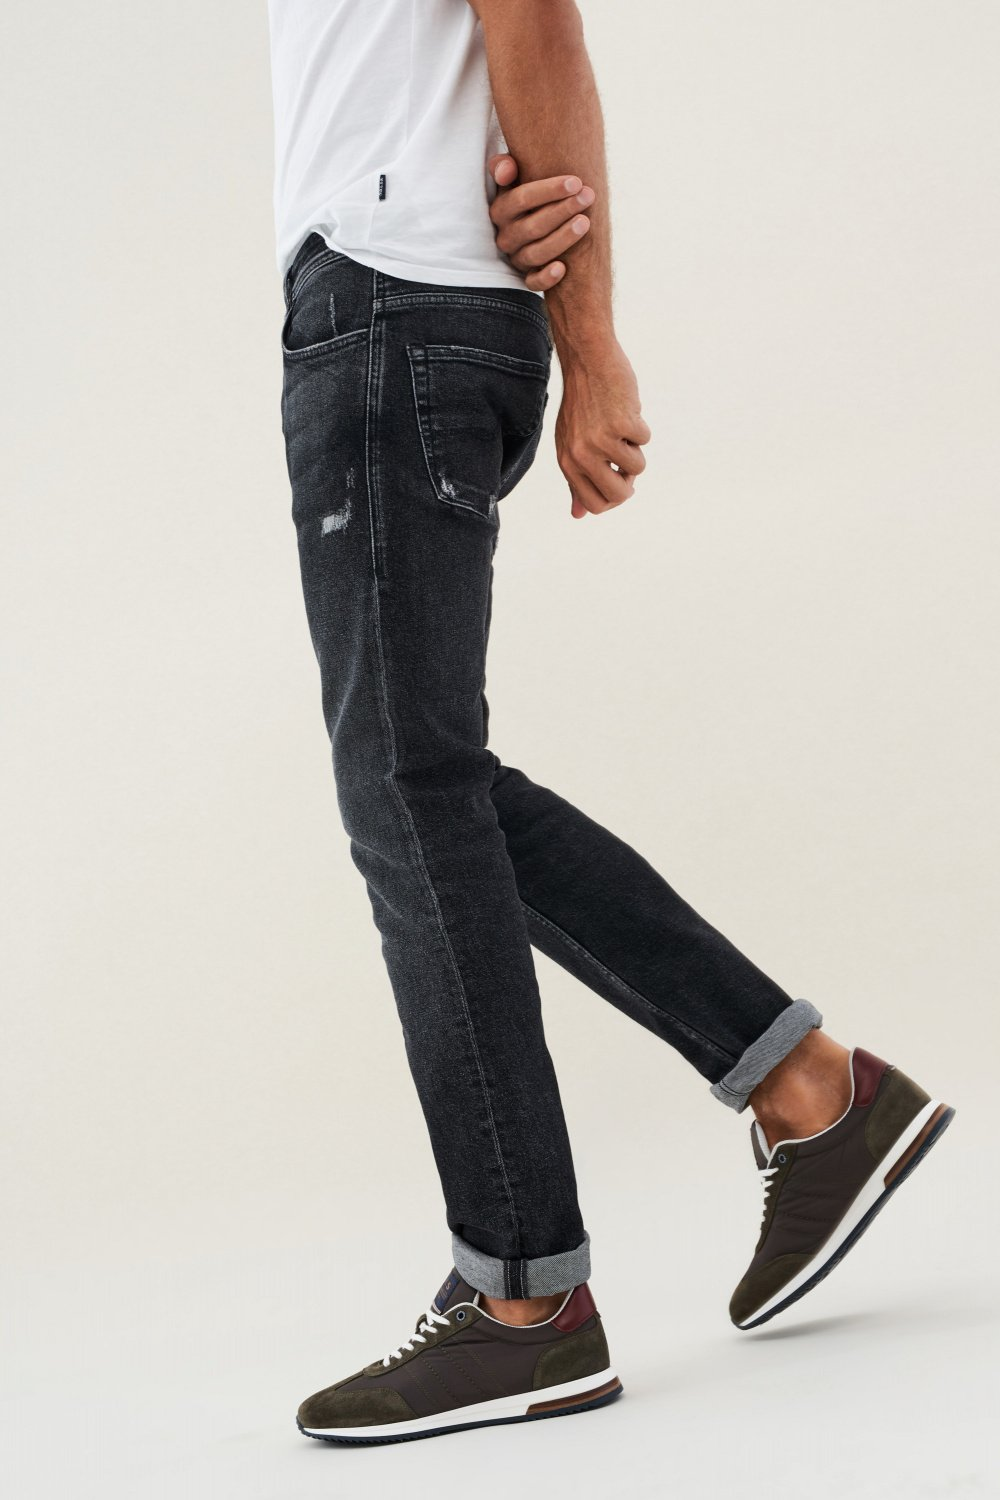 Jeans Lima tapered délavage moyen vintage - Salsa